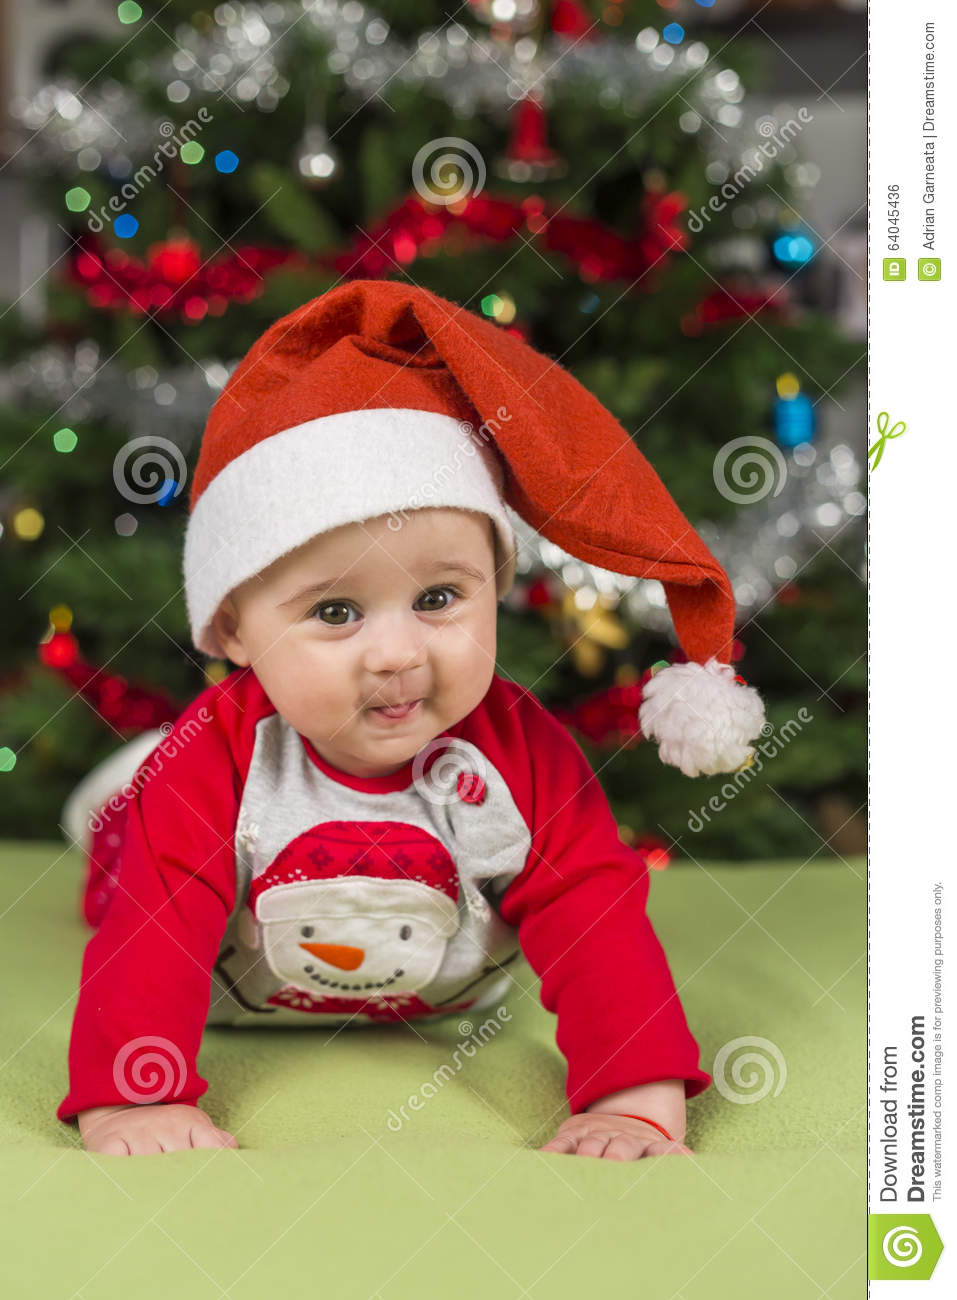 50b584dbe52f A smile from a little girl that stays in hands with Santa cap with Christmas  theme background